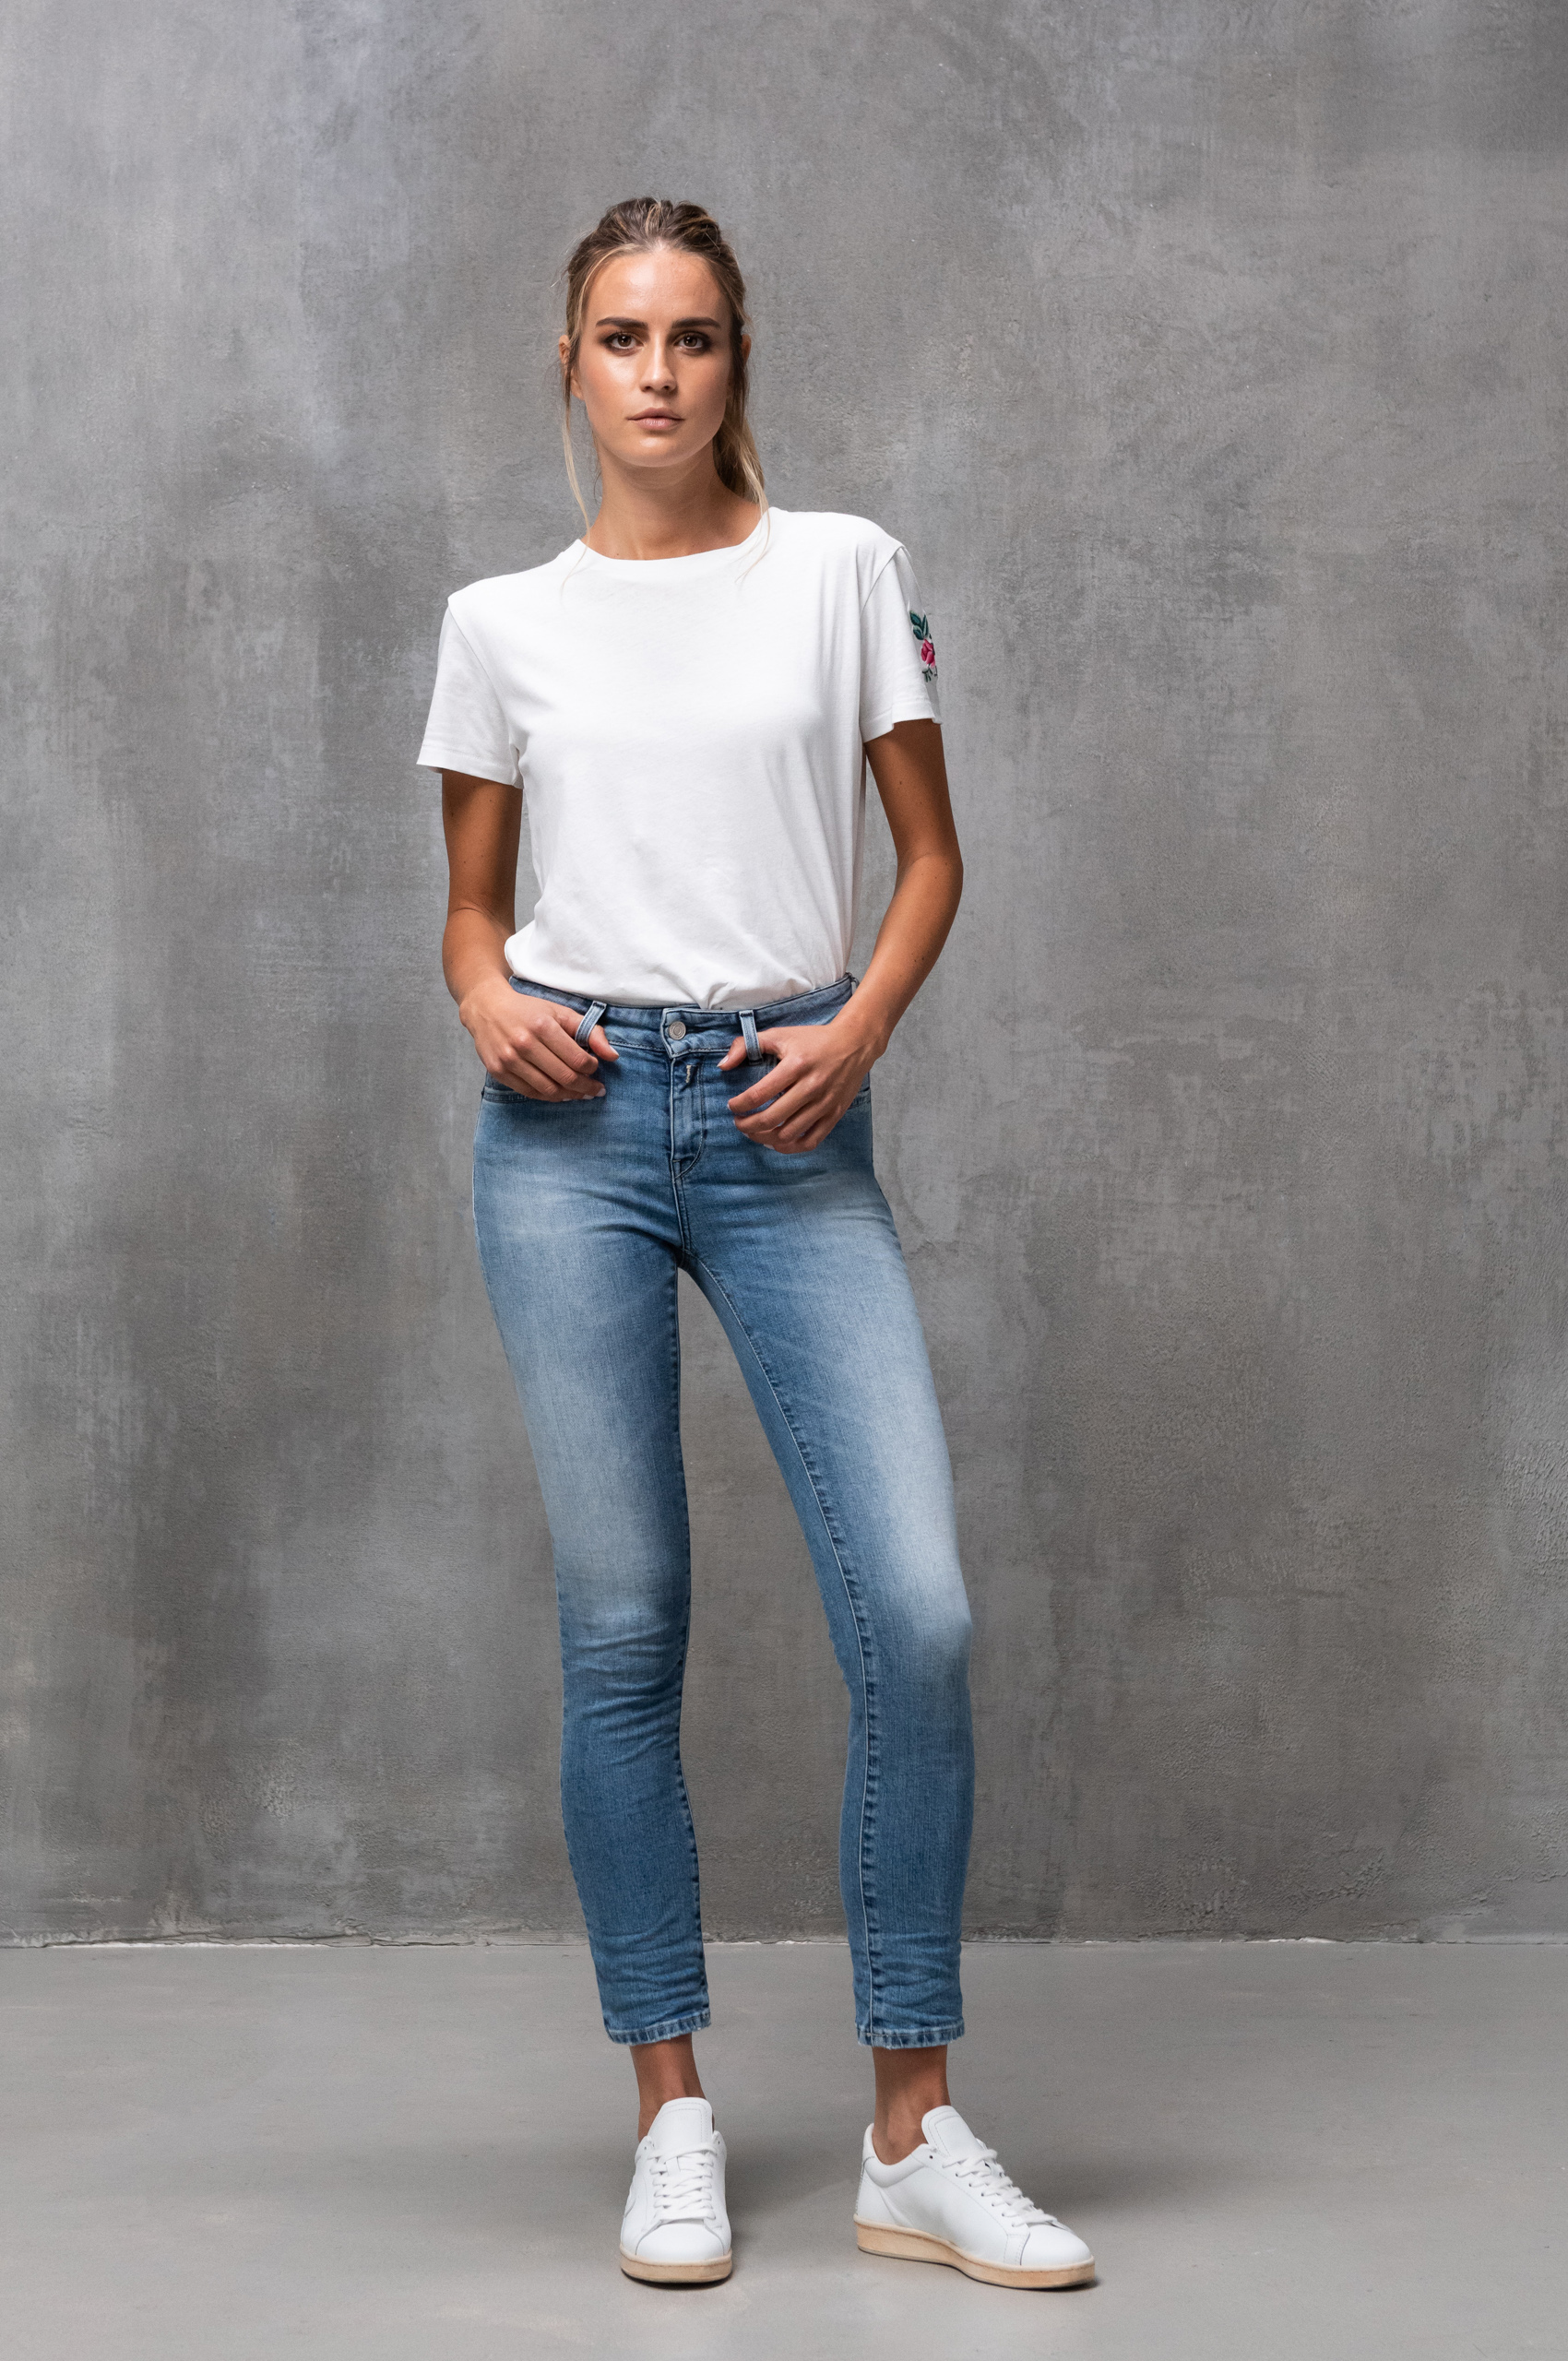 Faaby jeans fit guide women